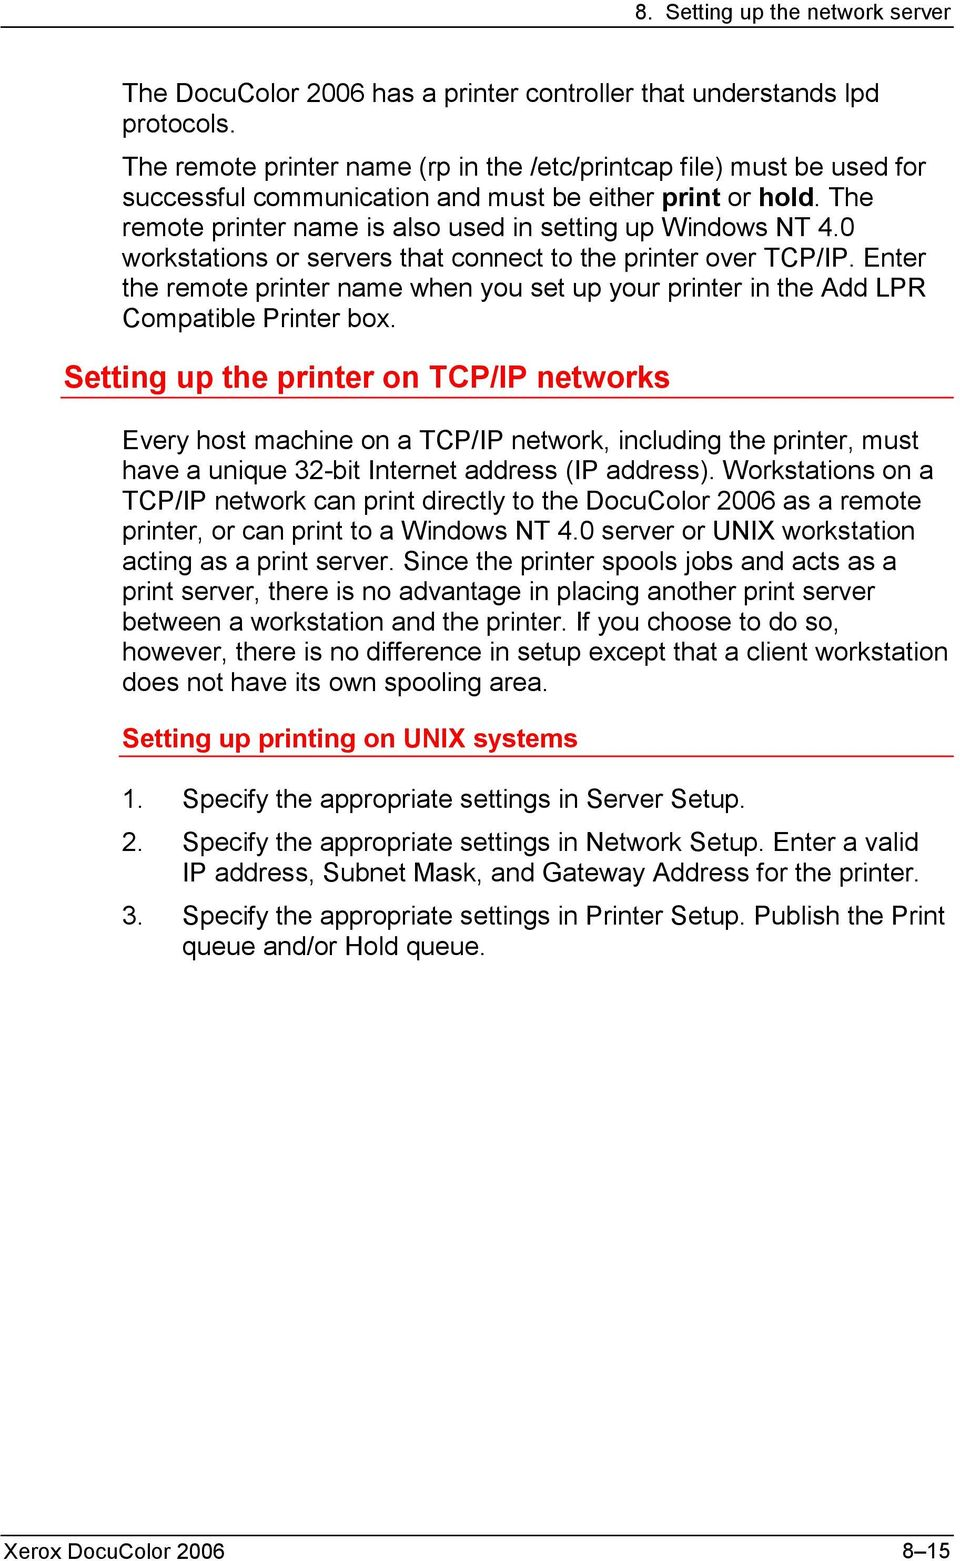 0 workstations or servers that connect to the printer over TCP/IP. Enter the remote printer name when you set up your printer in the Add LPR Compatible Printer box.